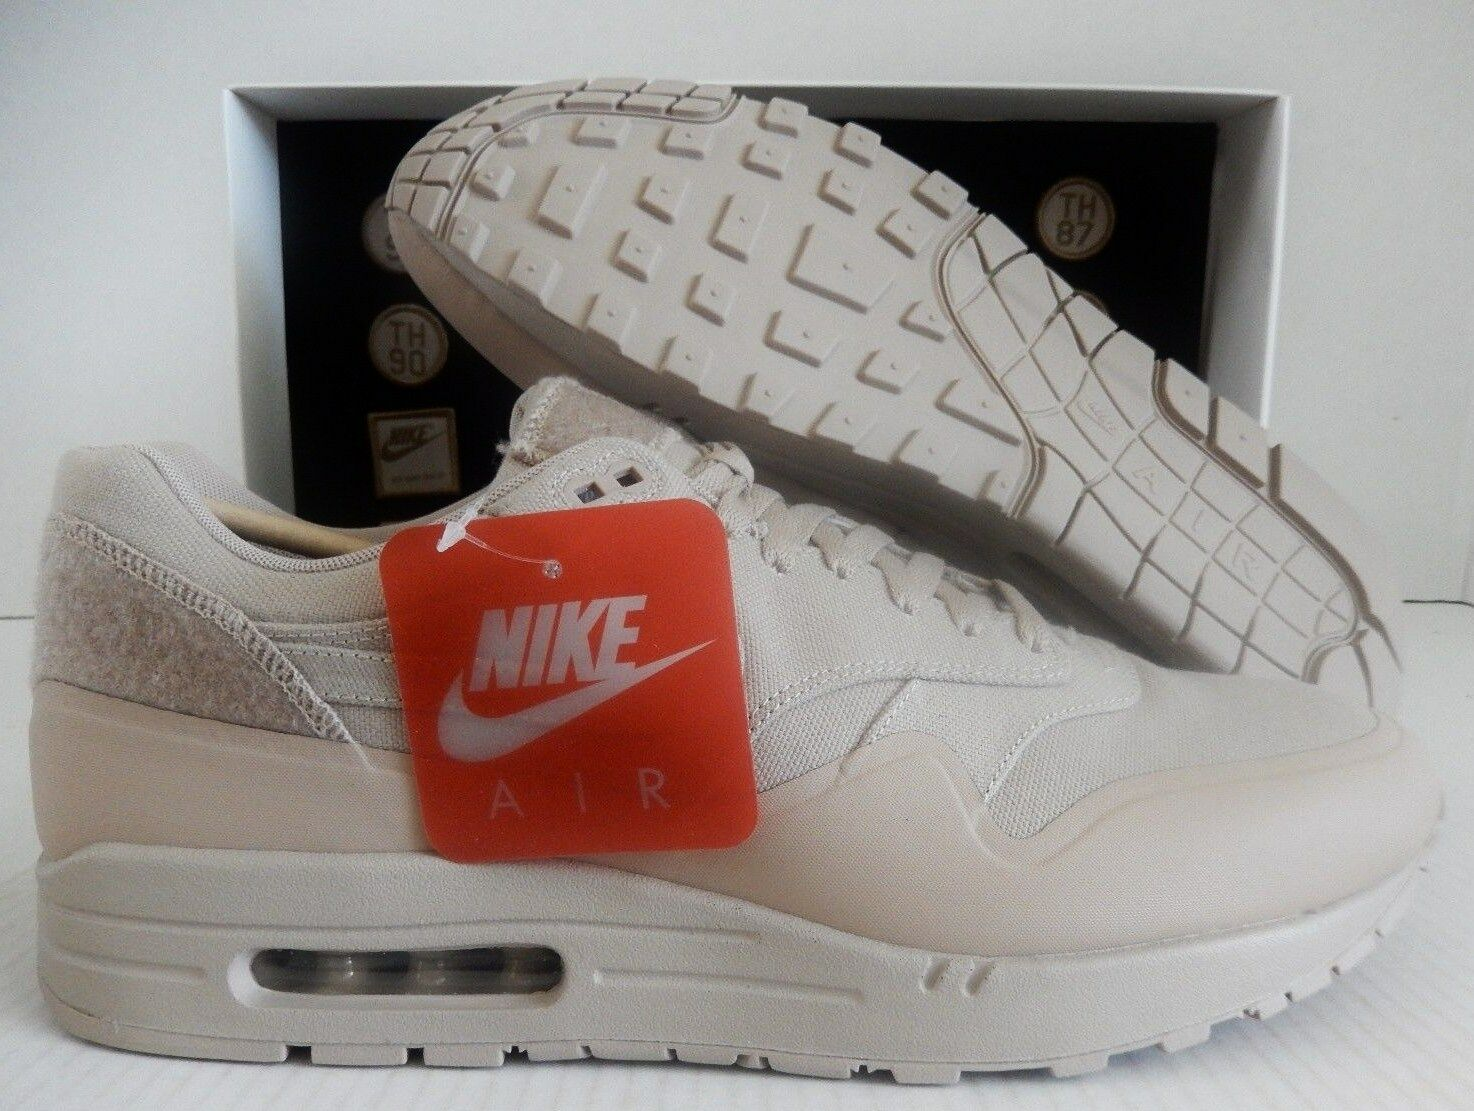 NIKE MEN AIR MAX 1 V SP PATCHES SAND-SAND SZ 9.5 [704901-200]